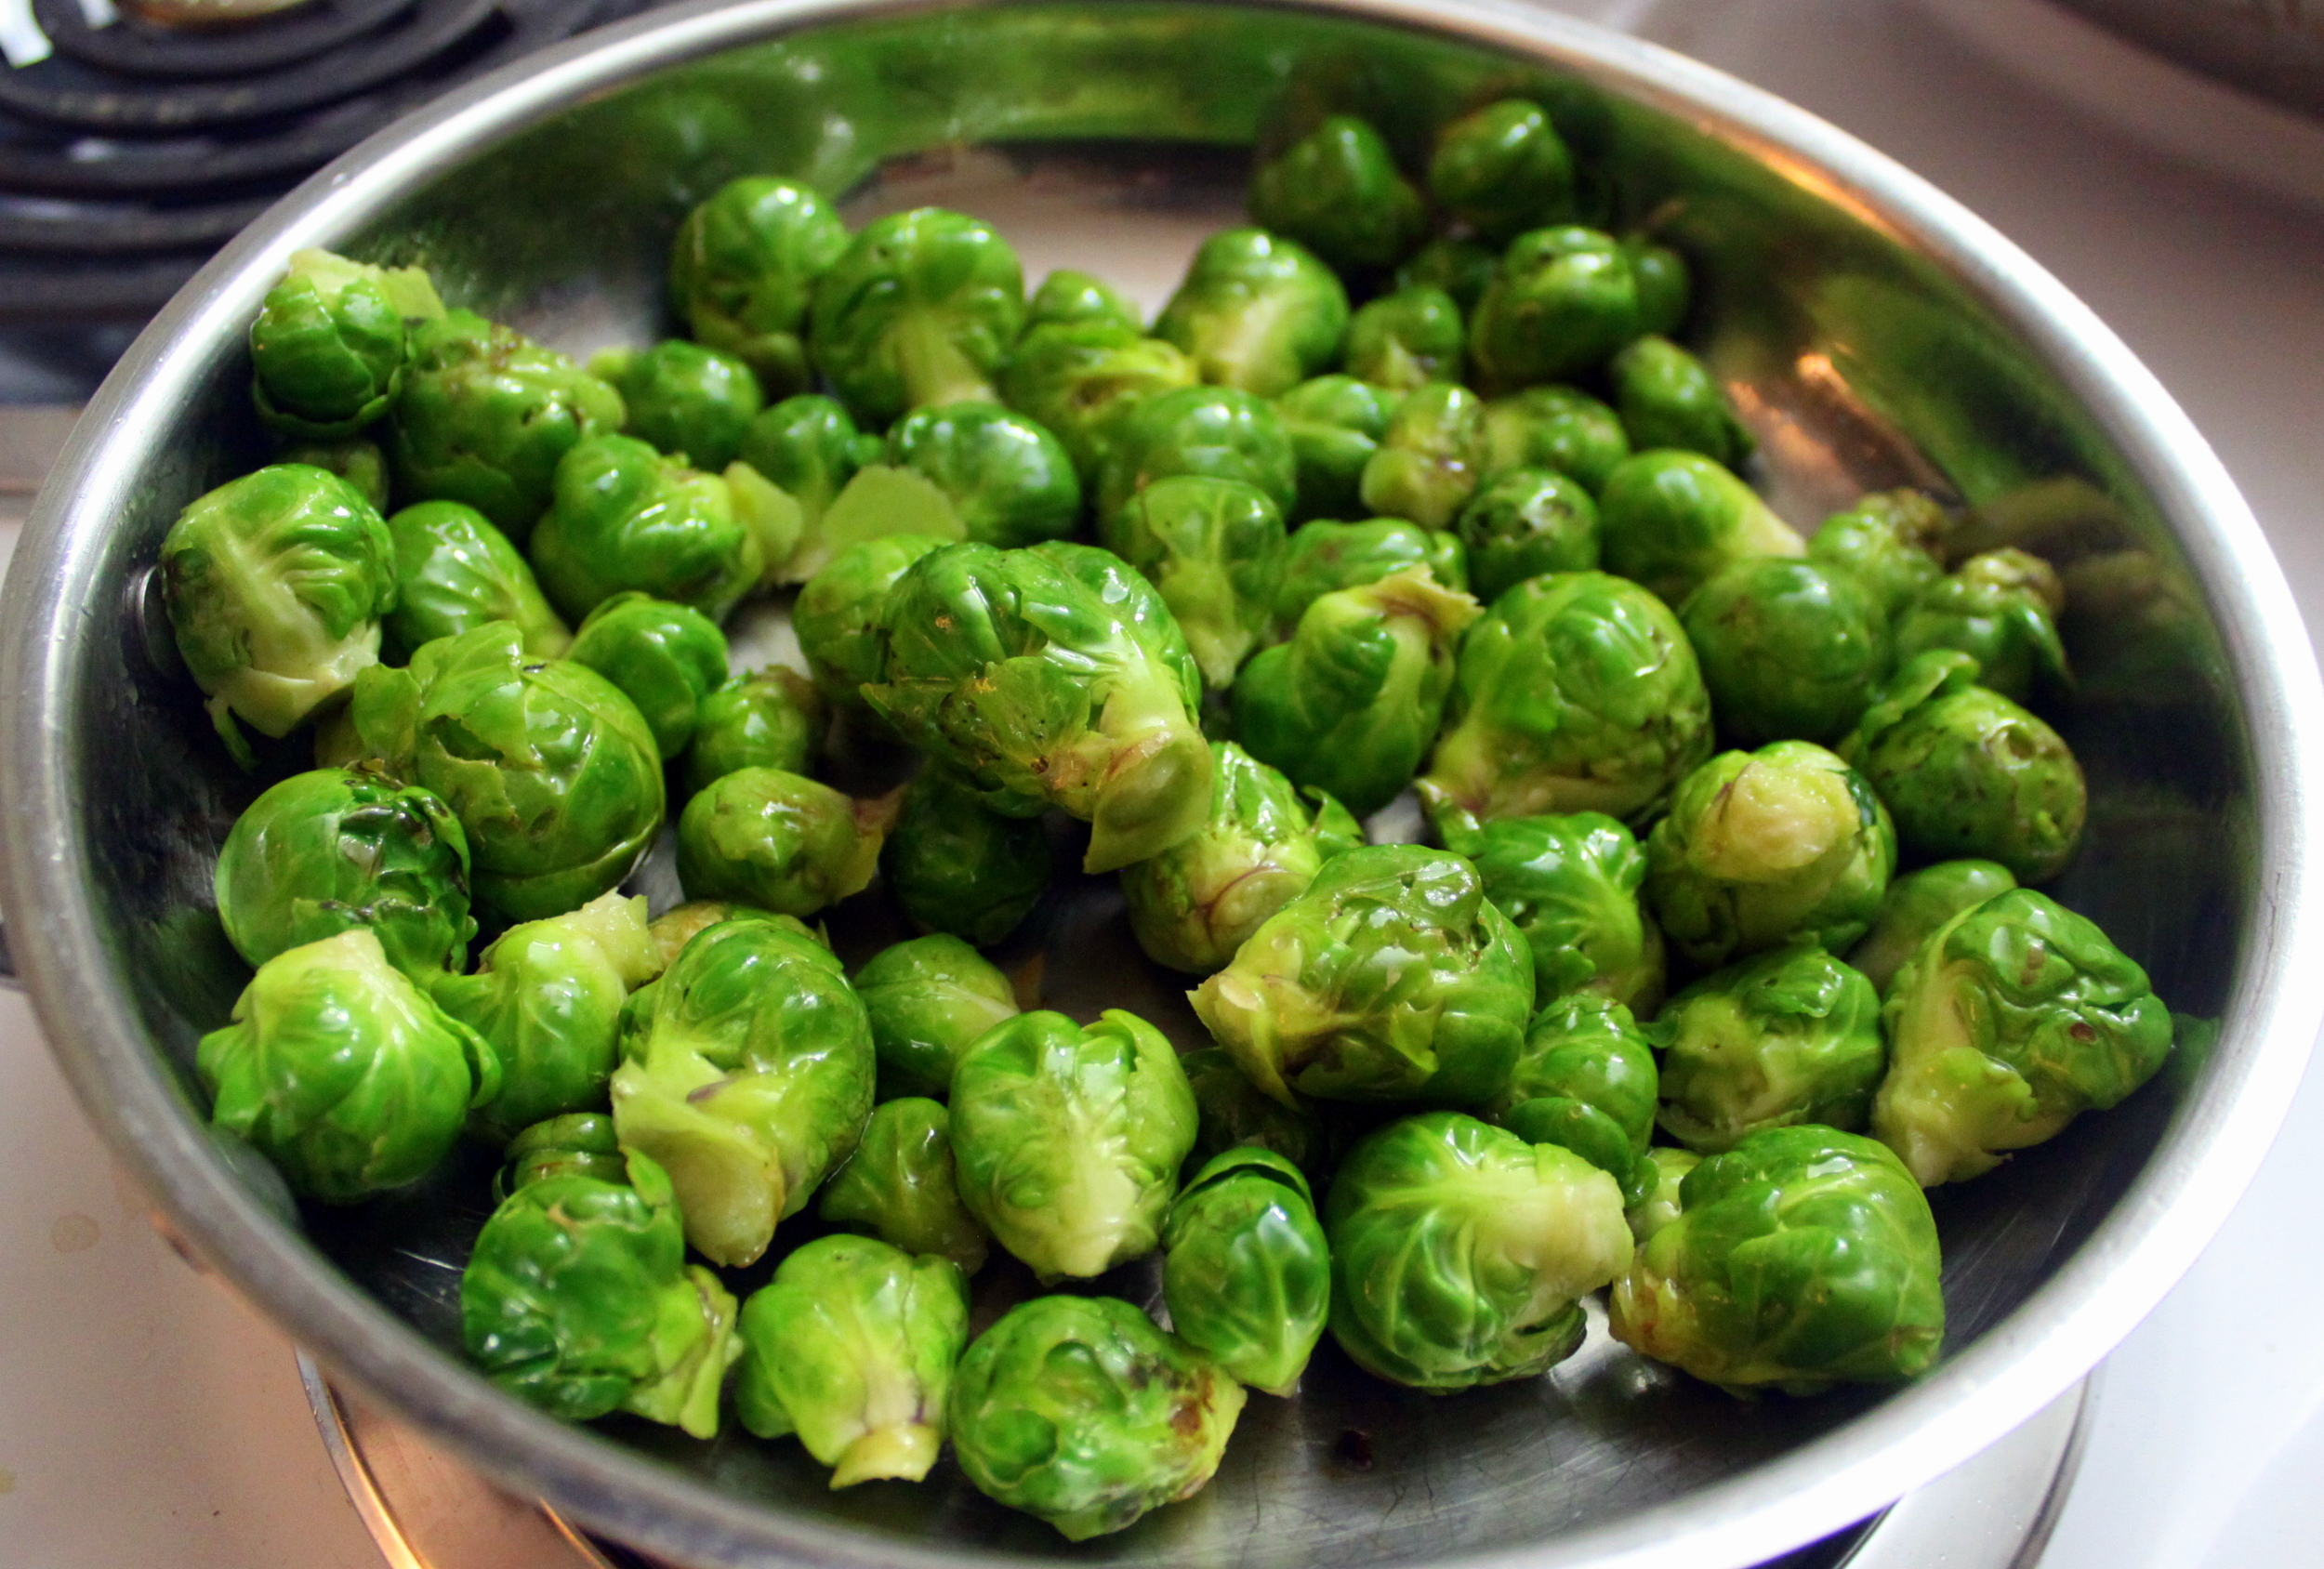 With a quick saute,  Brussel sprouts are a great last minute side.